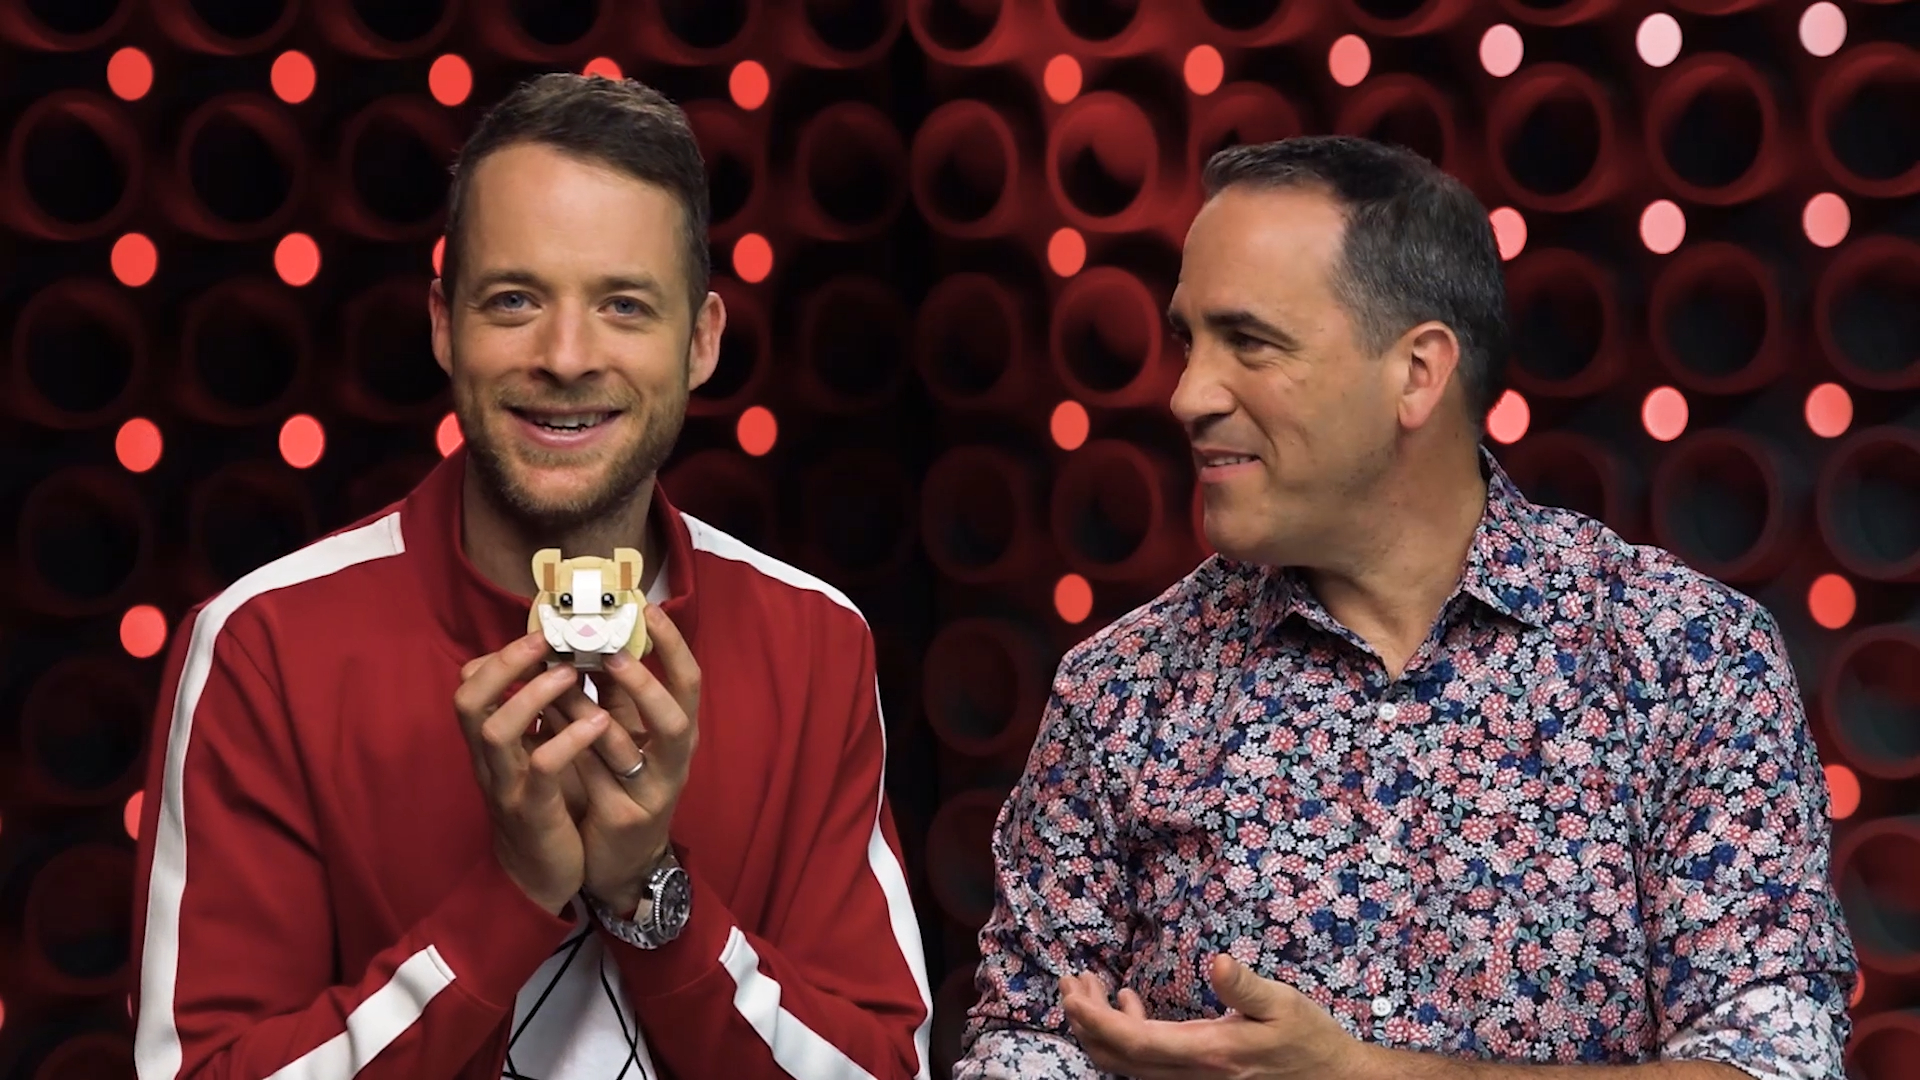 Hamish Blake challenges Brickman to build a hamster out of LEGO